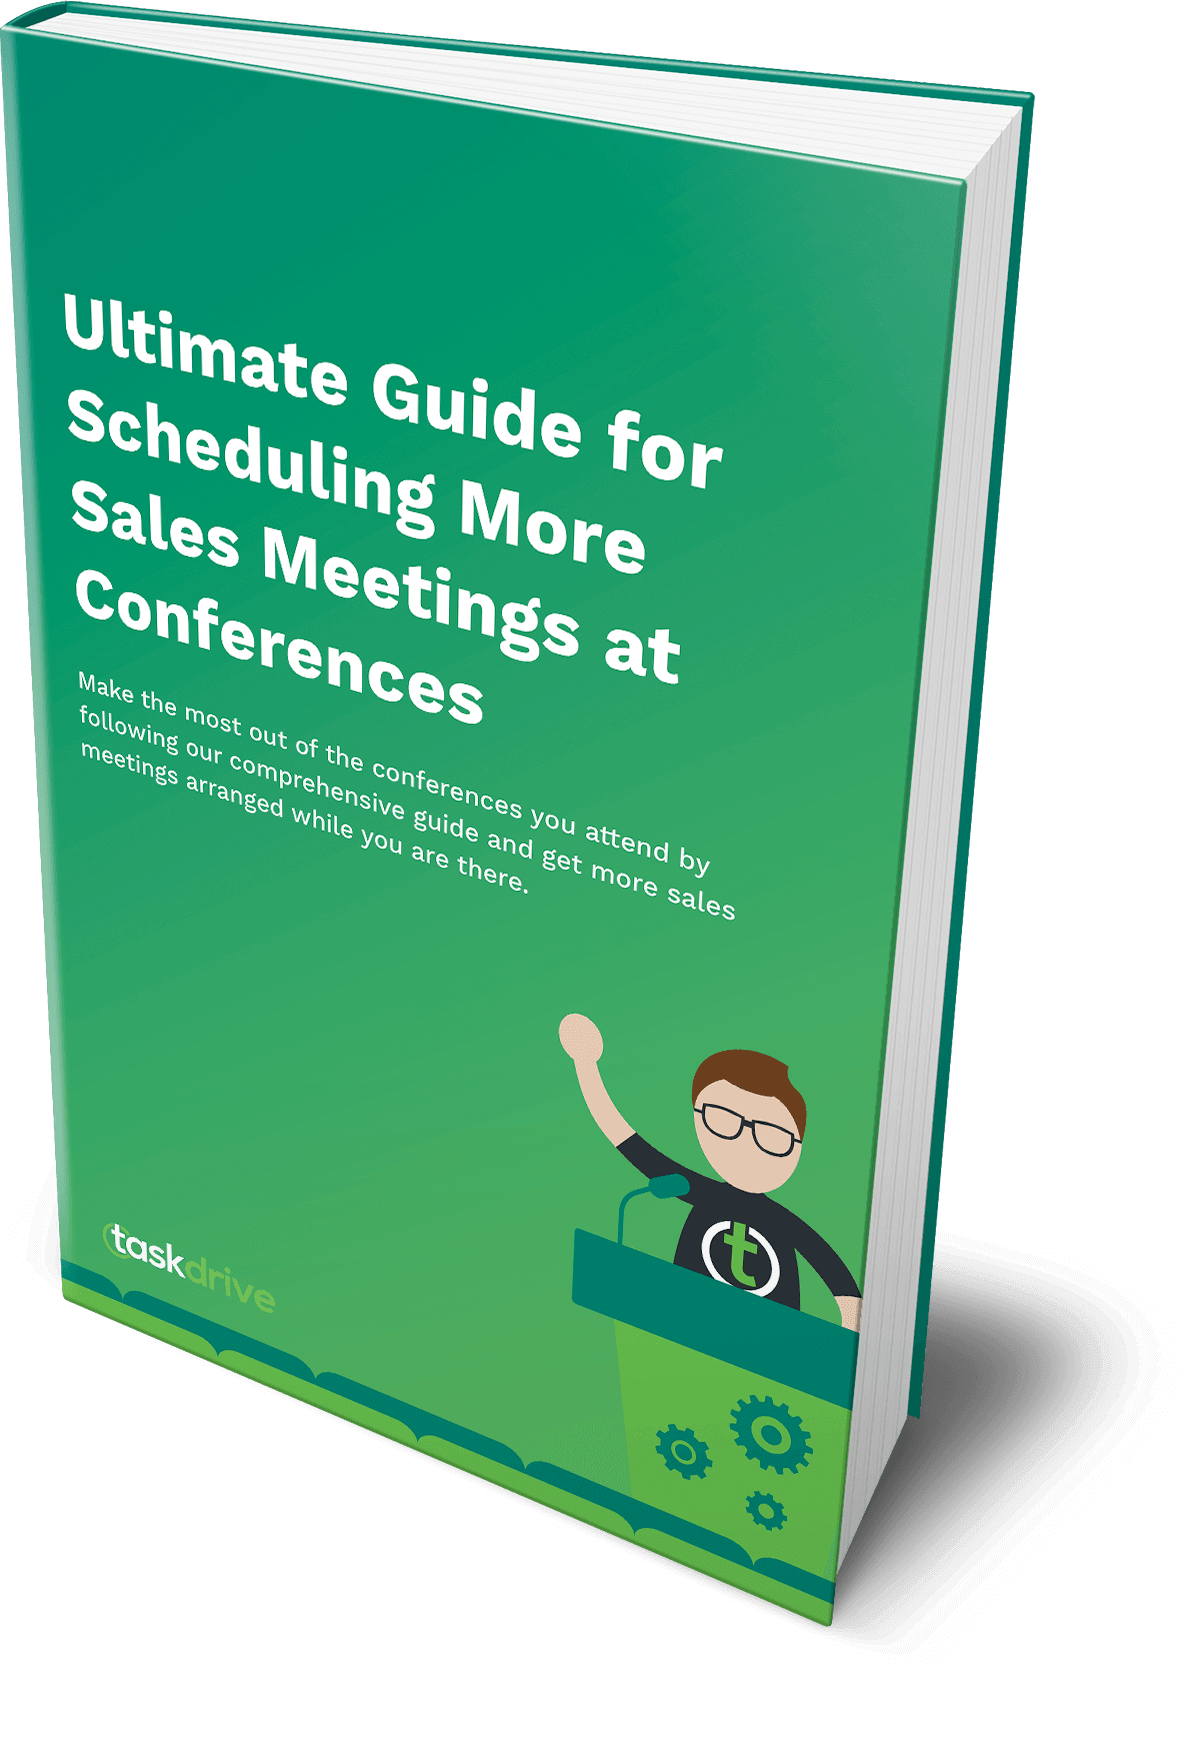 Ultimate Guide to Scheduling More Sales Meetings at Conferences